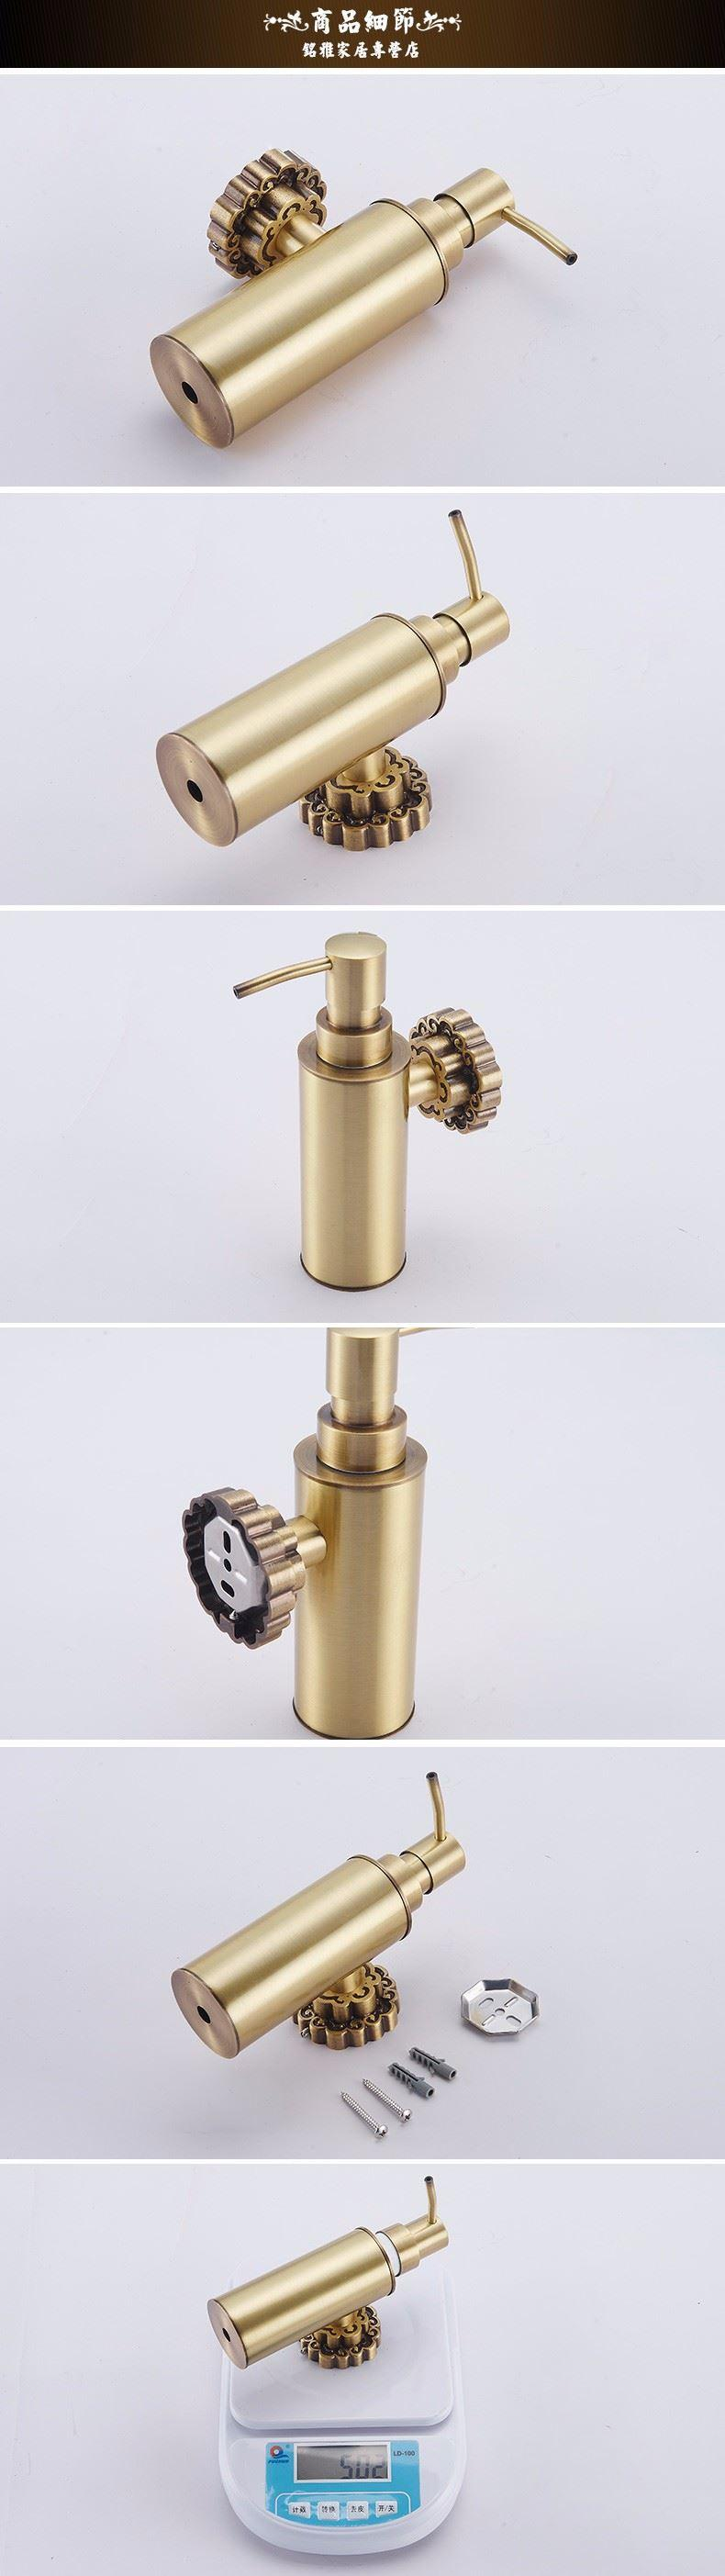 chrome products set crystal hardware bathroom accessories modern product brass silver